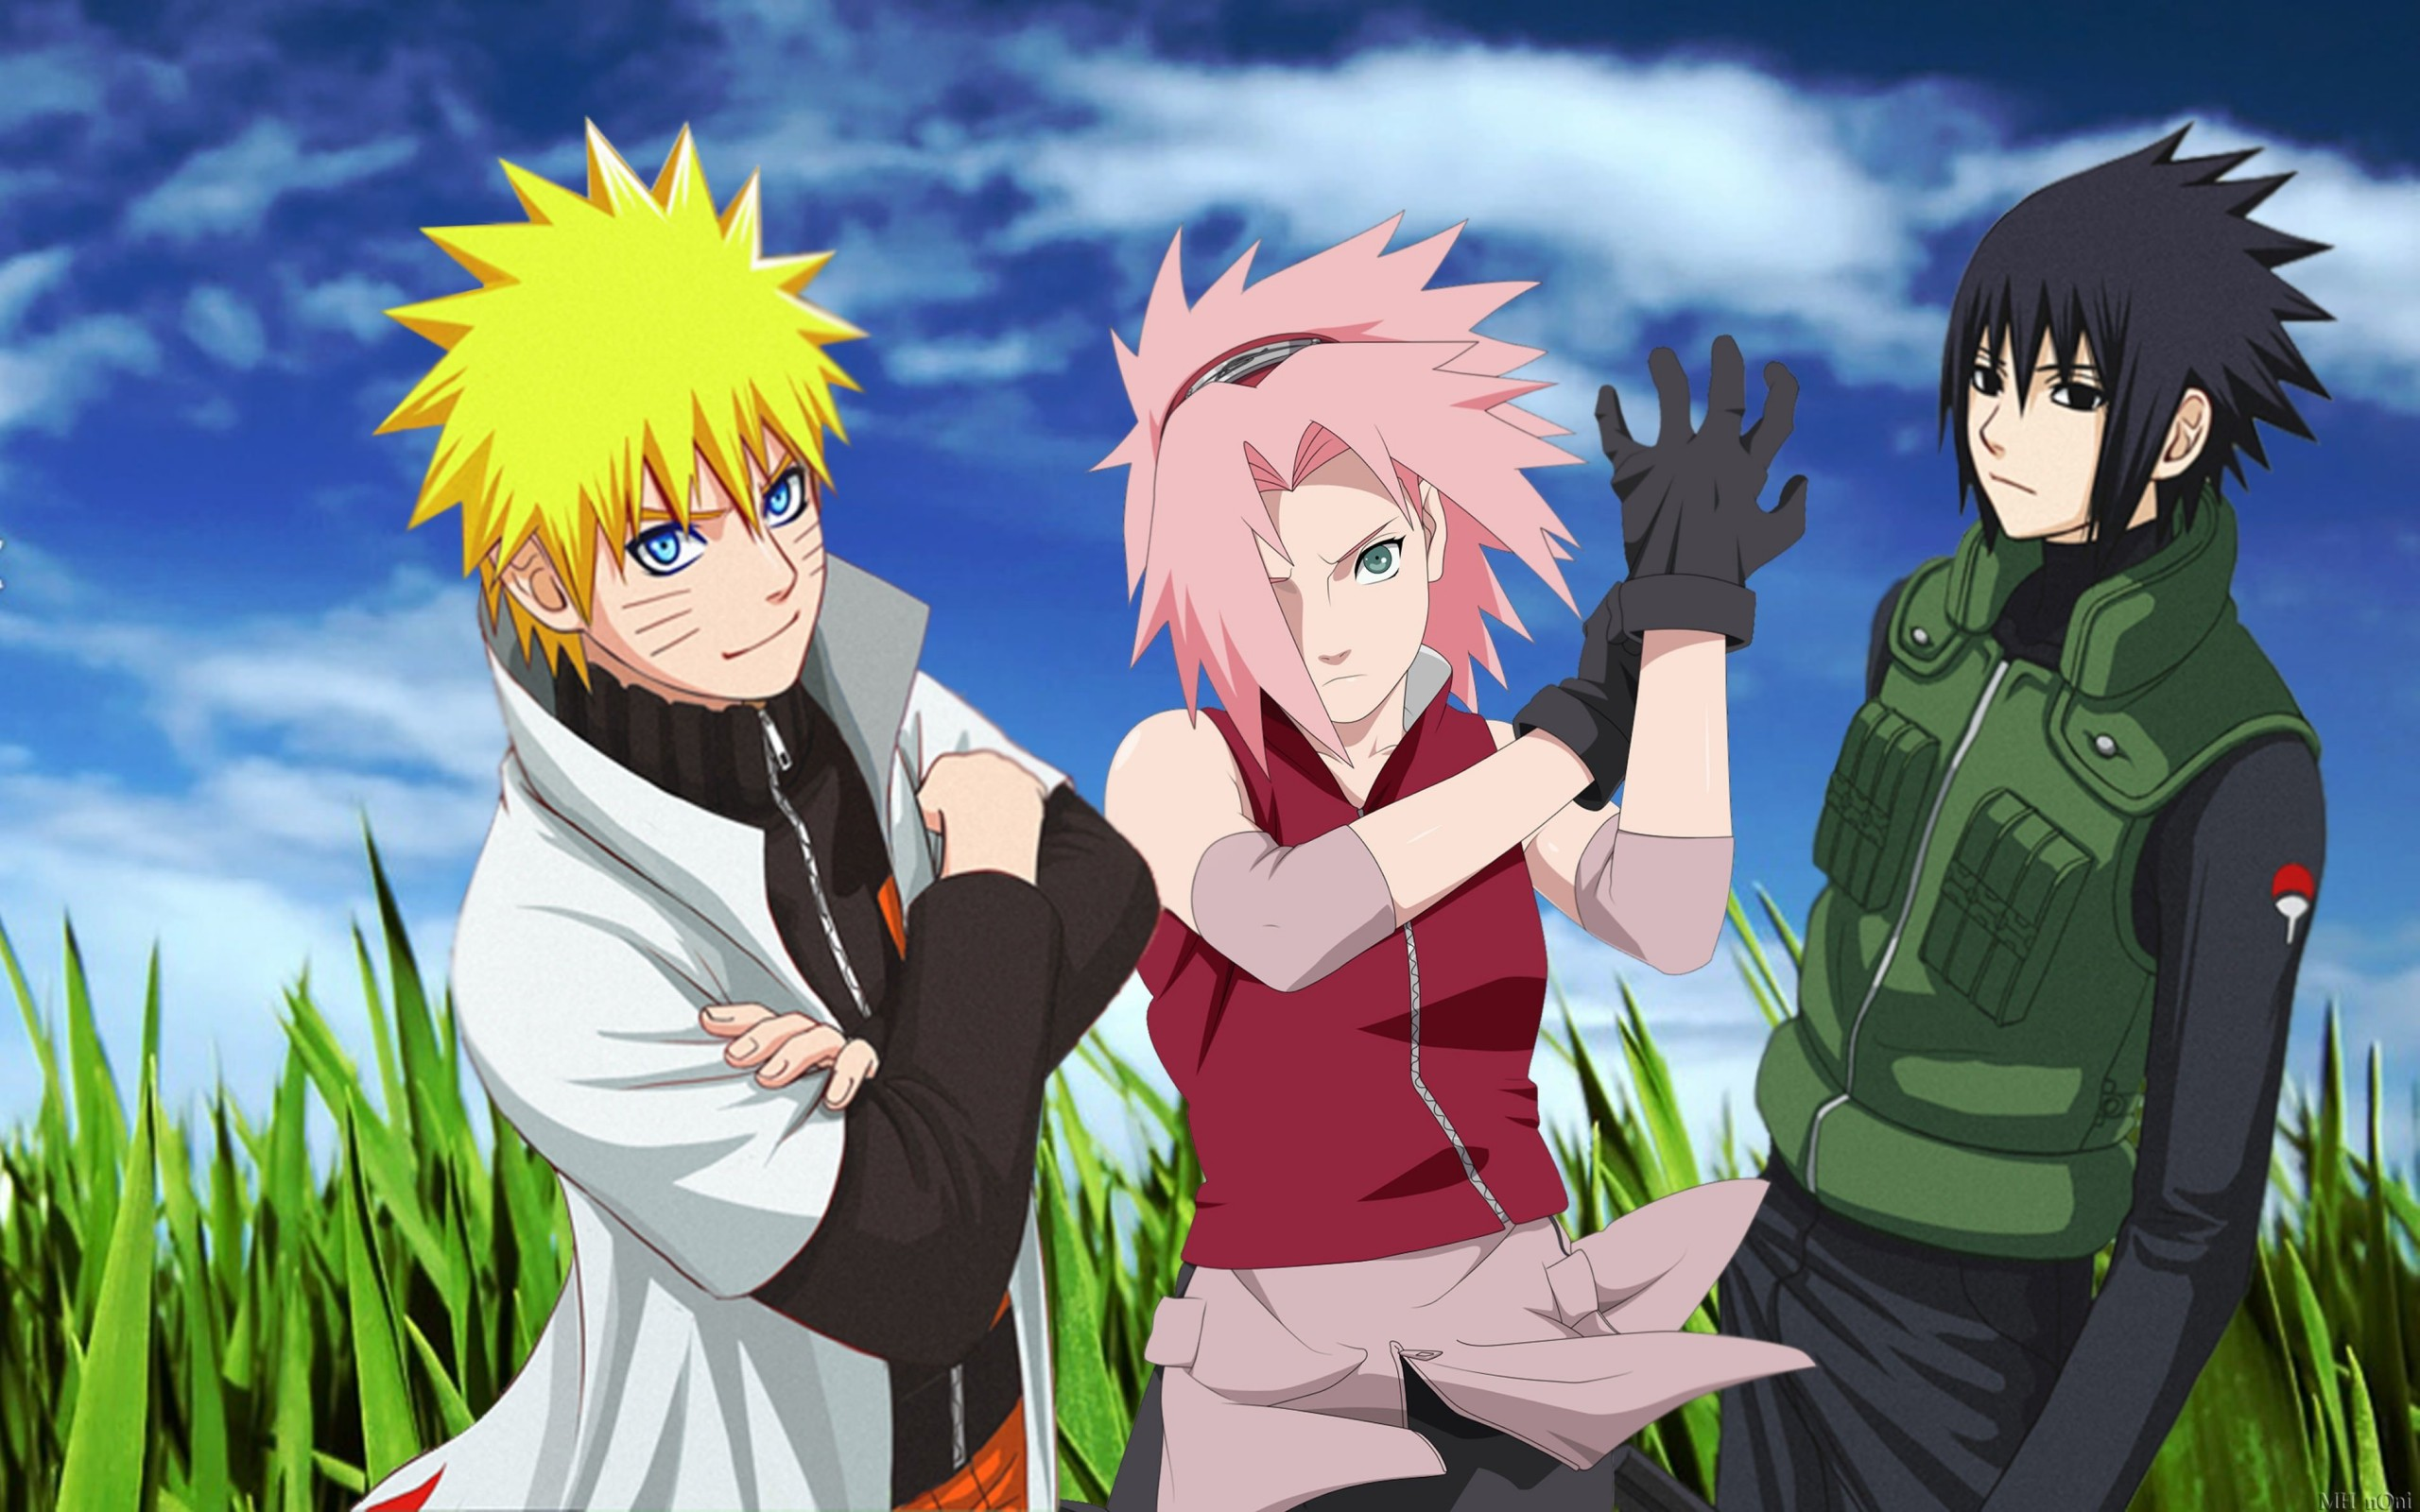 Naruto, Sakura and Sasuke Wallpaper for Desktop 2560x1600